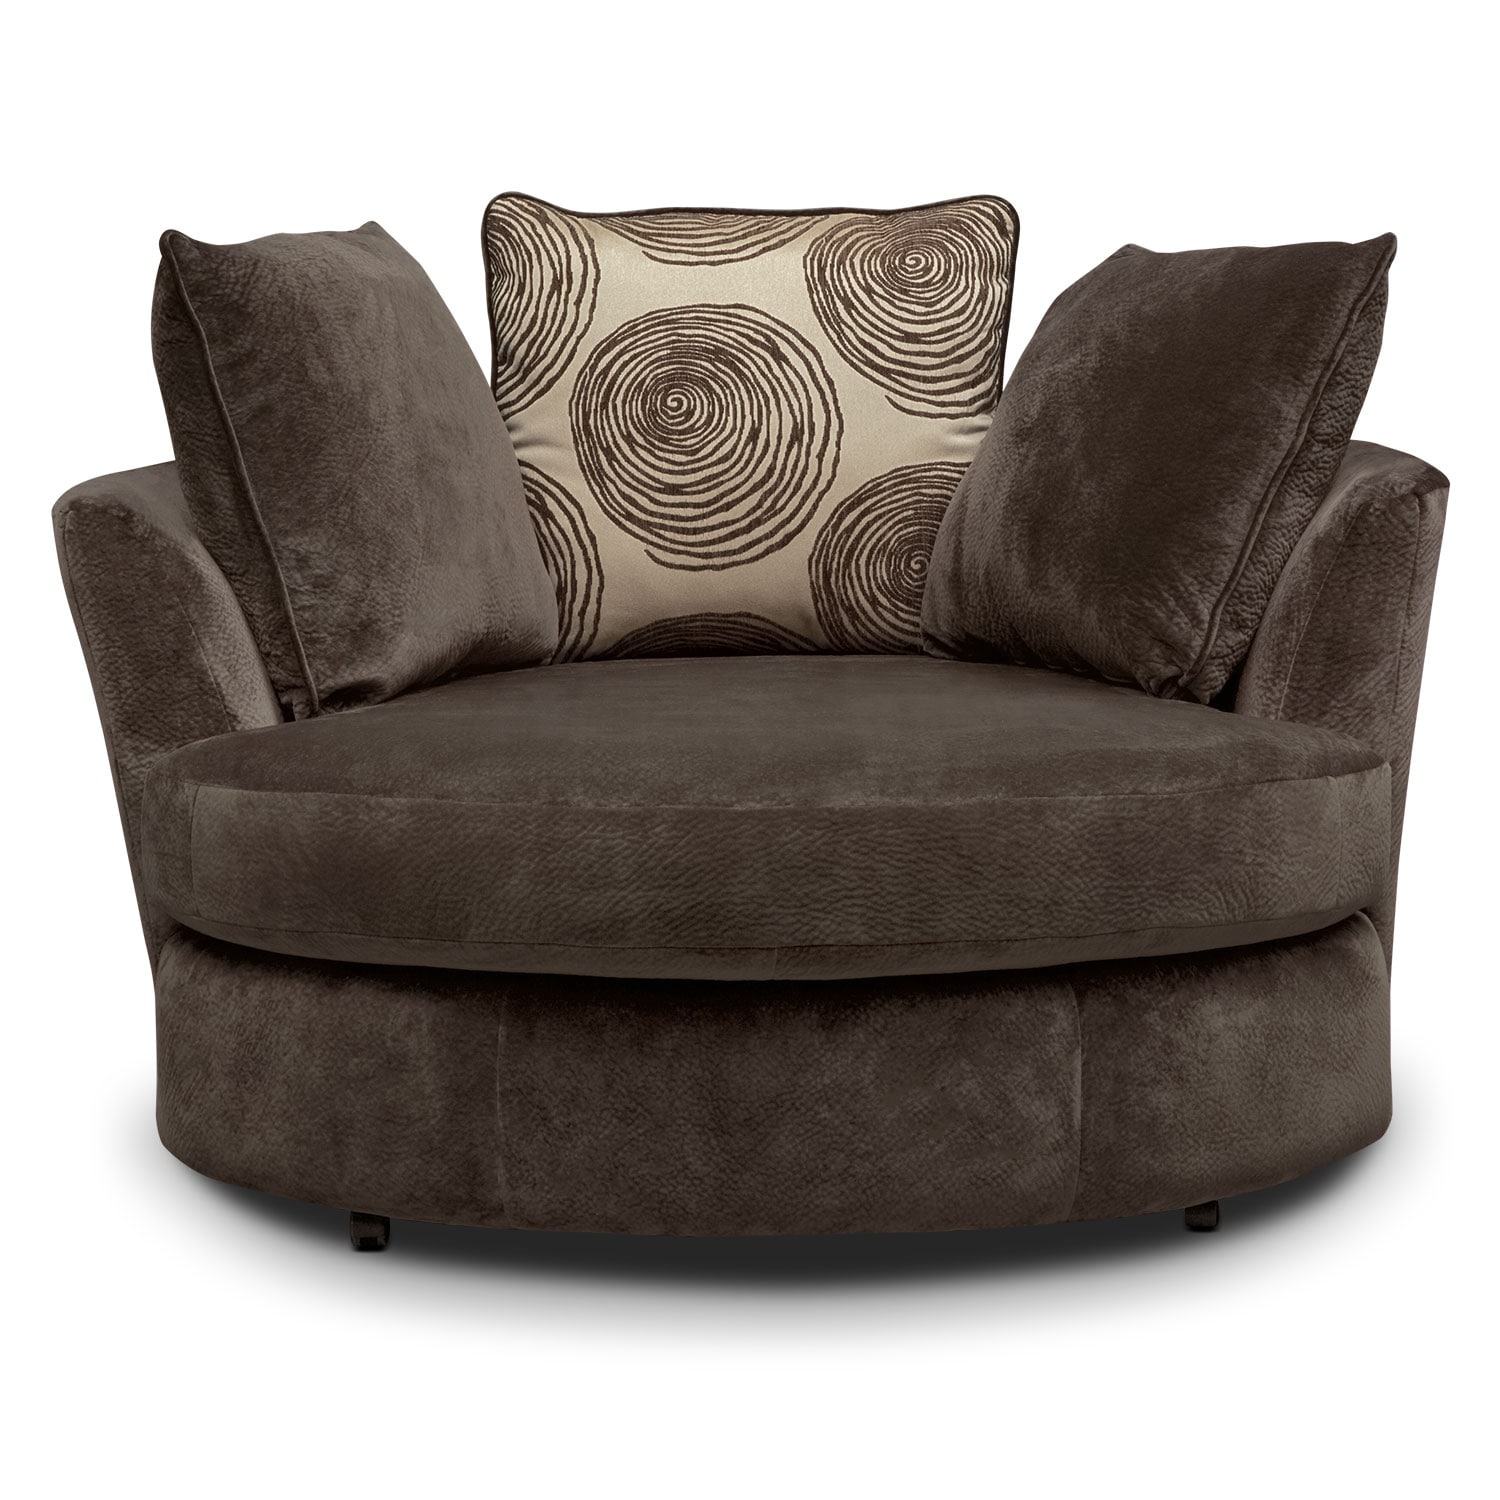 Cordelle swivel chair chocolate value city furniture - Swivel chair living room furniture ...